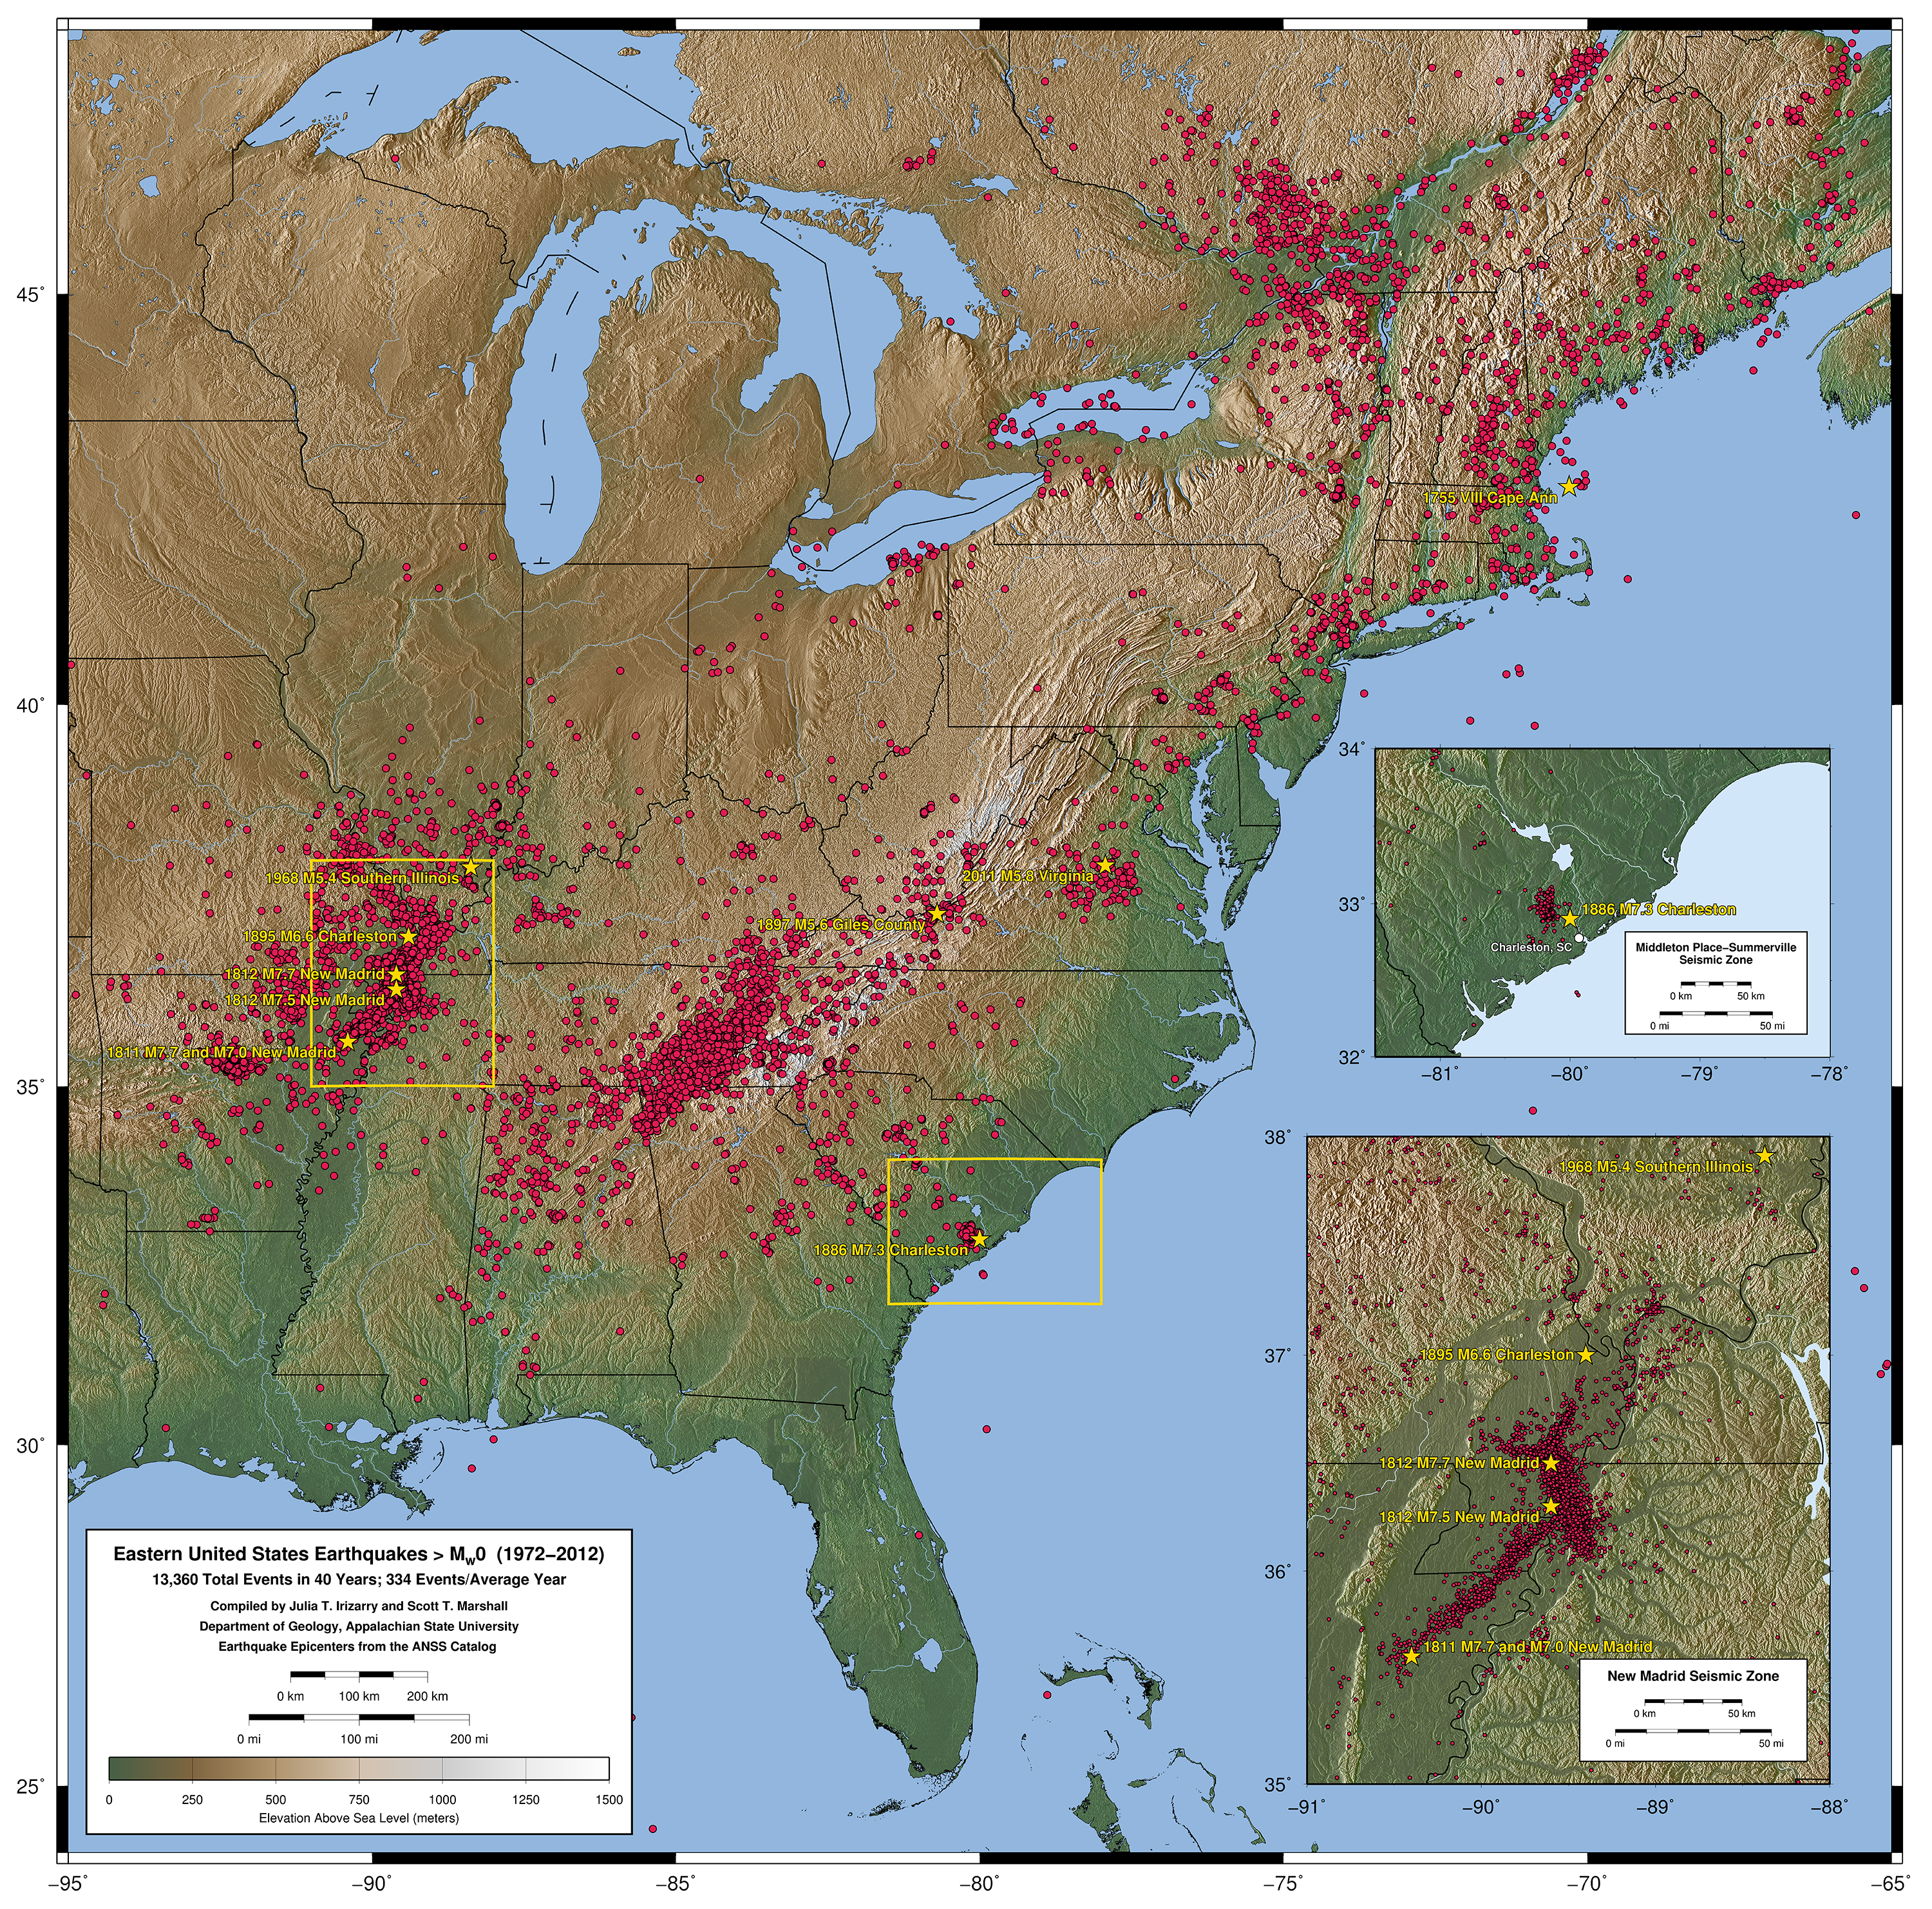 Maps Of Eastern United States Earthquakes From - Us brown map with states